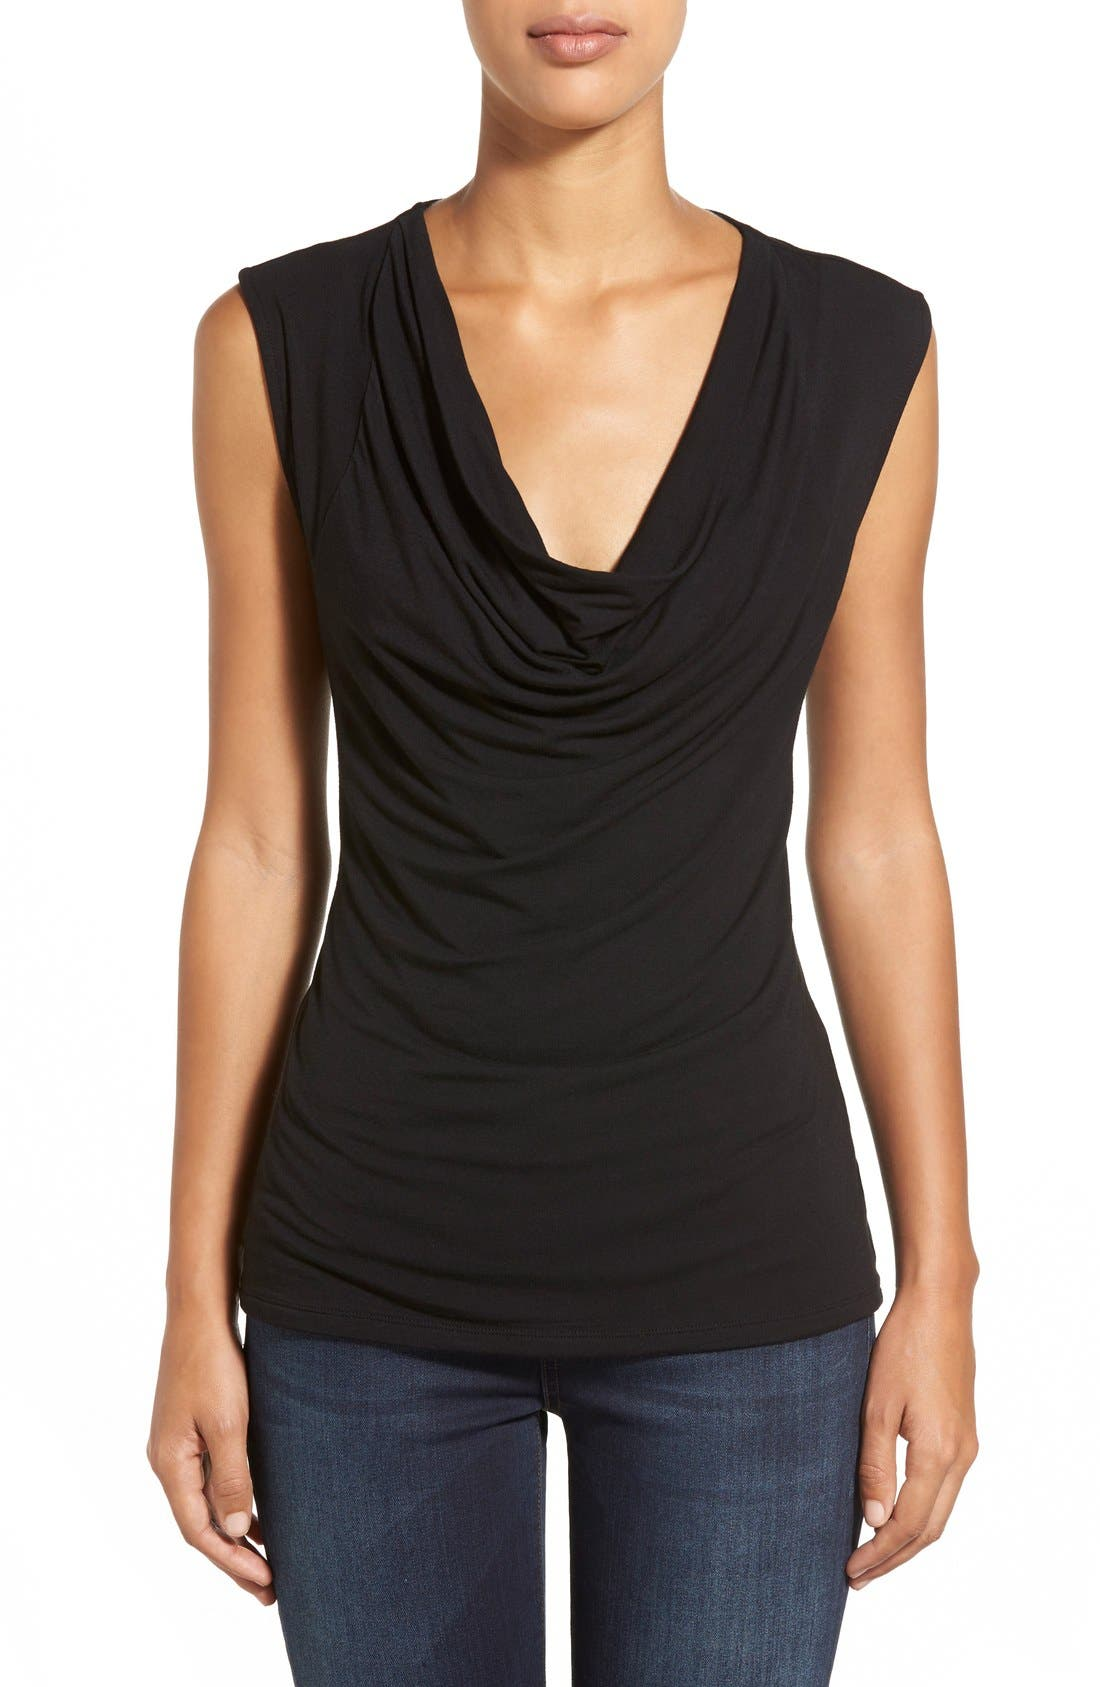 Alternate Image 1 Selected - Halogen® Cowl Neck Sleeveless Top (Regular & Petite)